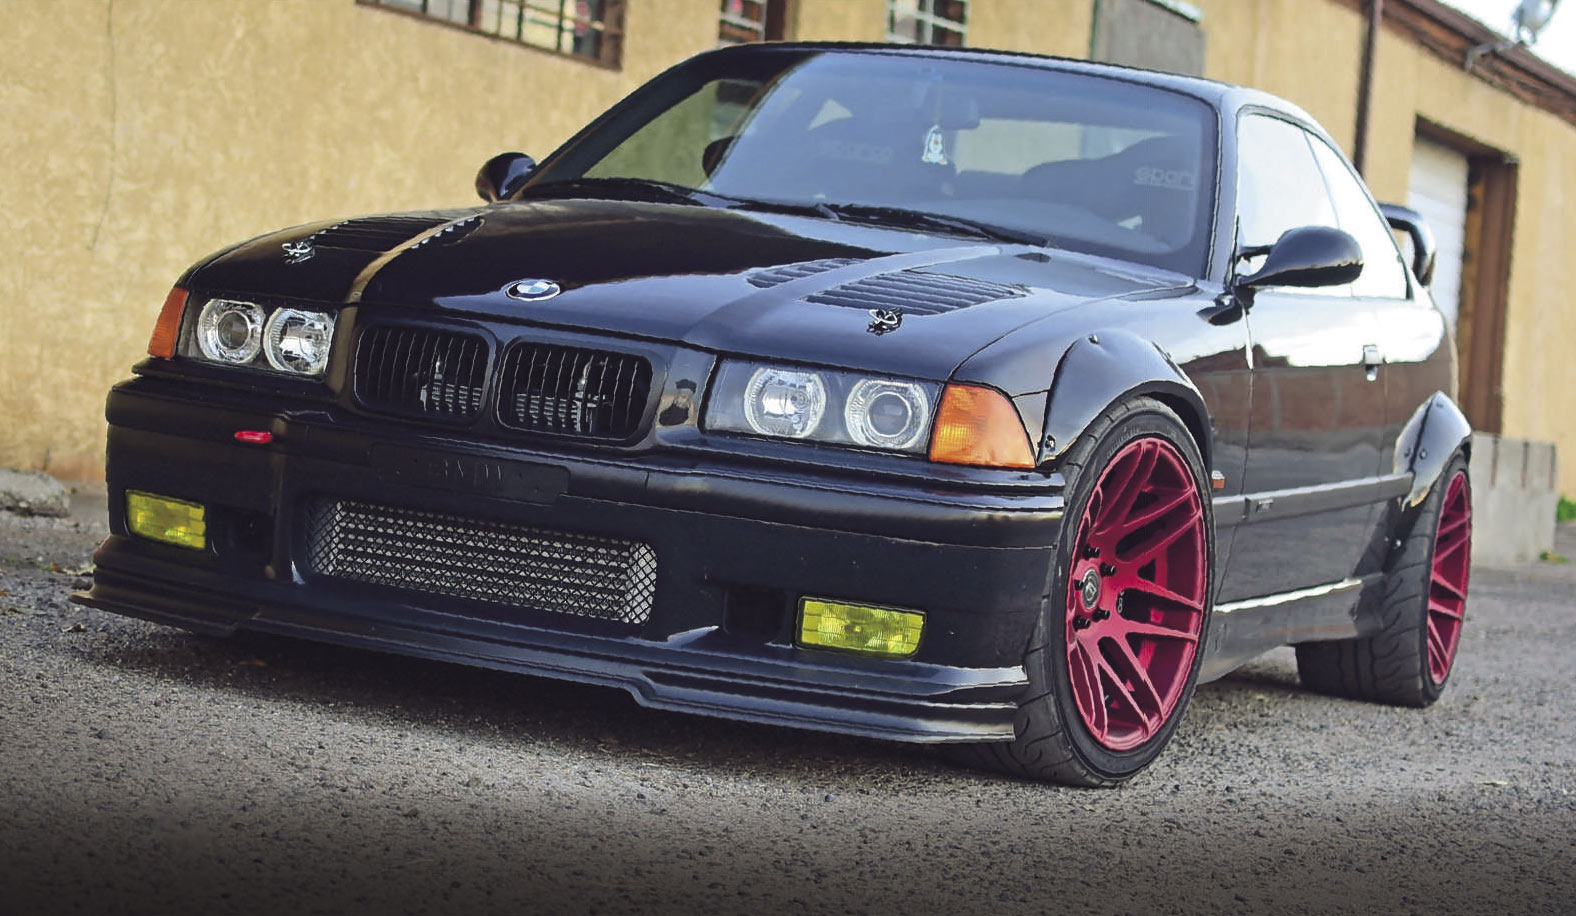 Supercharged 400hp S50 Engined Wide Arch Bmw M3 Coupe E36 Drive My Blogs Drive